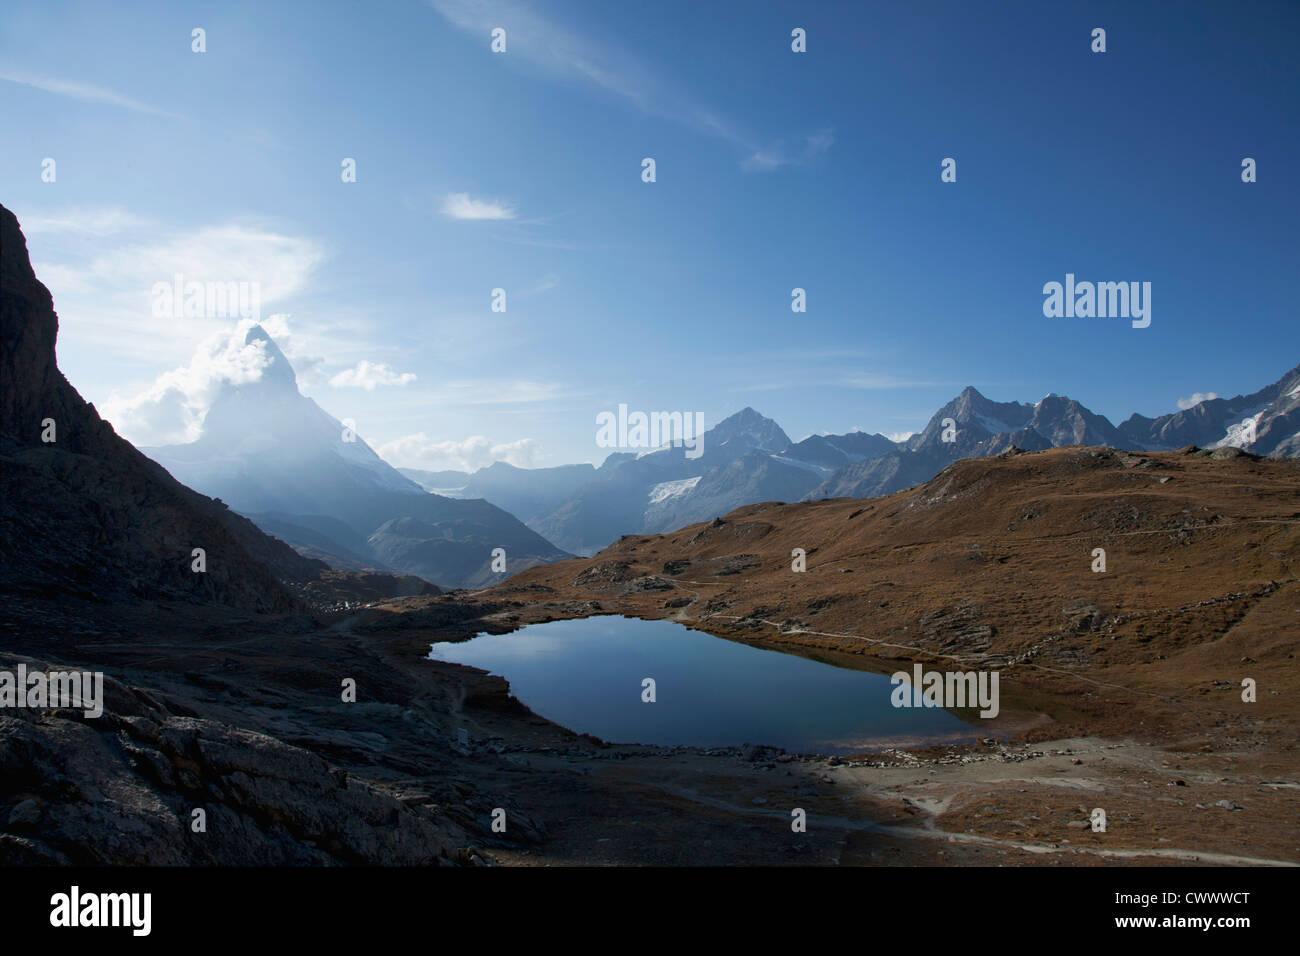 Aerial view of still lake in mountains - Stock Image